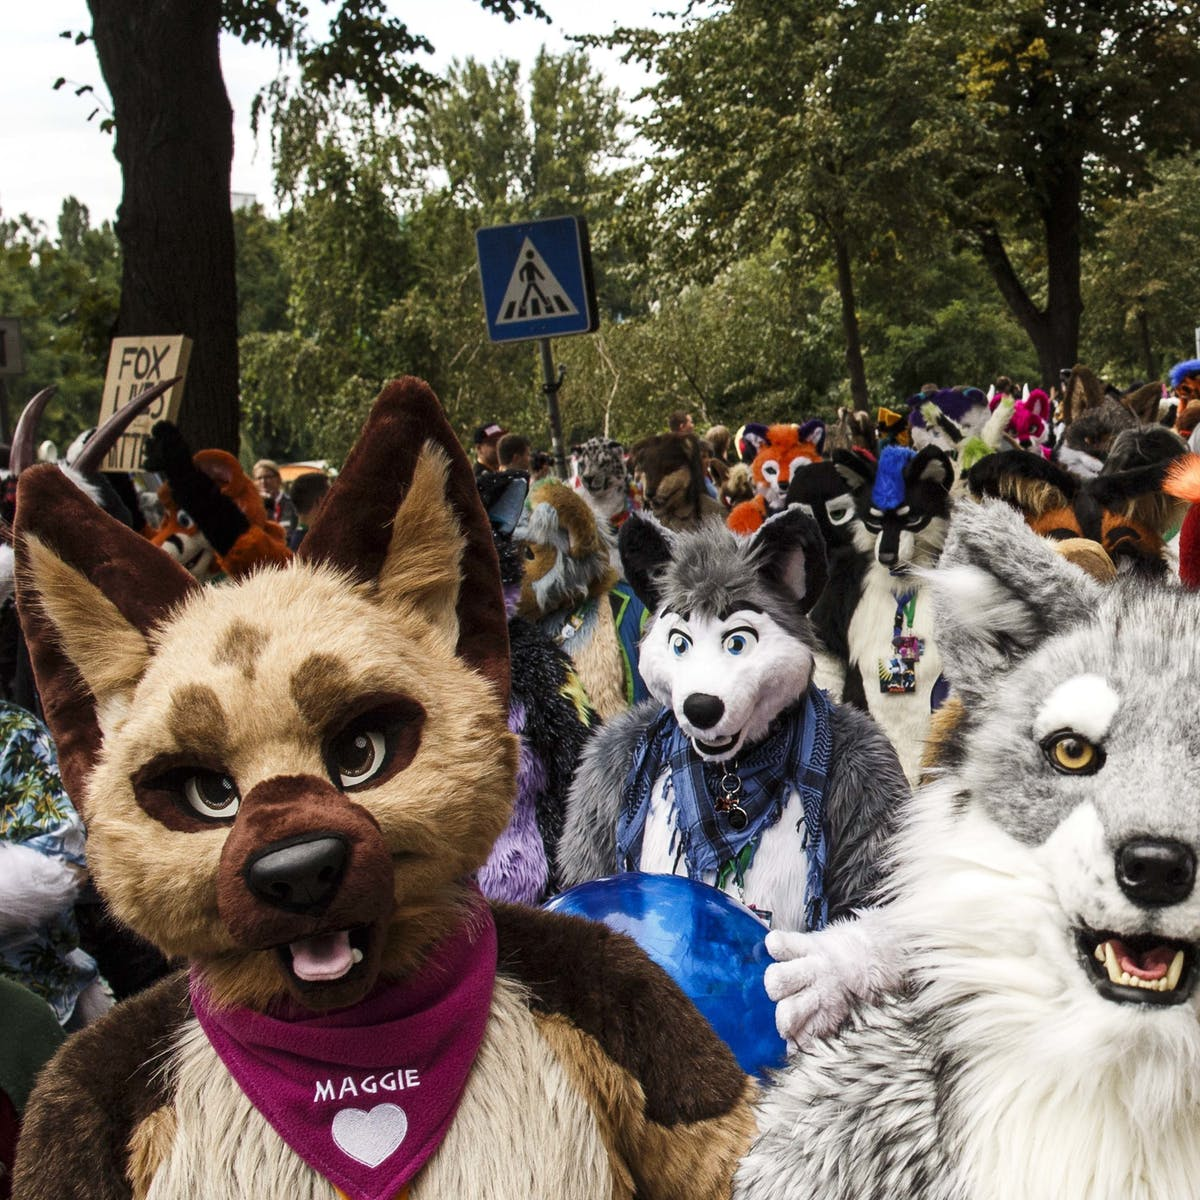 New Data Shows Furries Are Rapidly Growing in Number - But